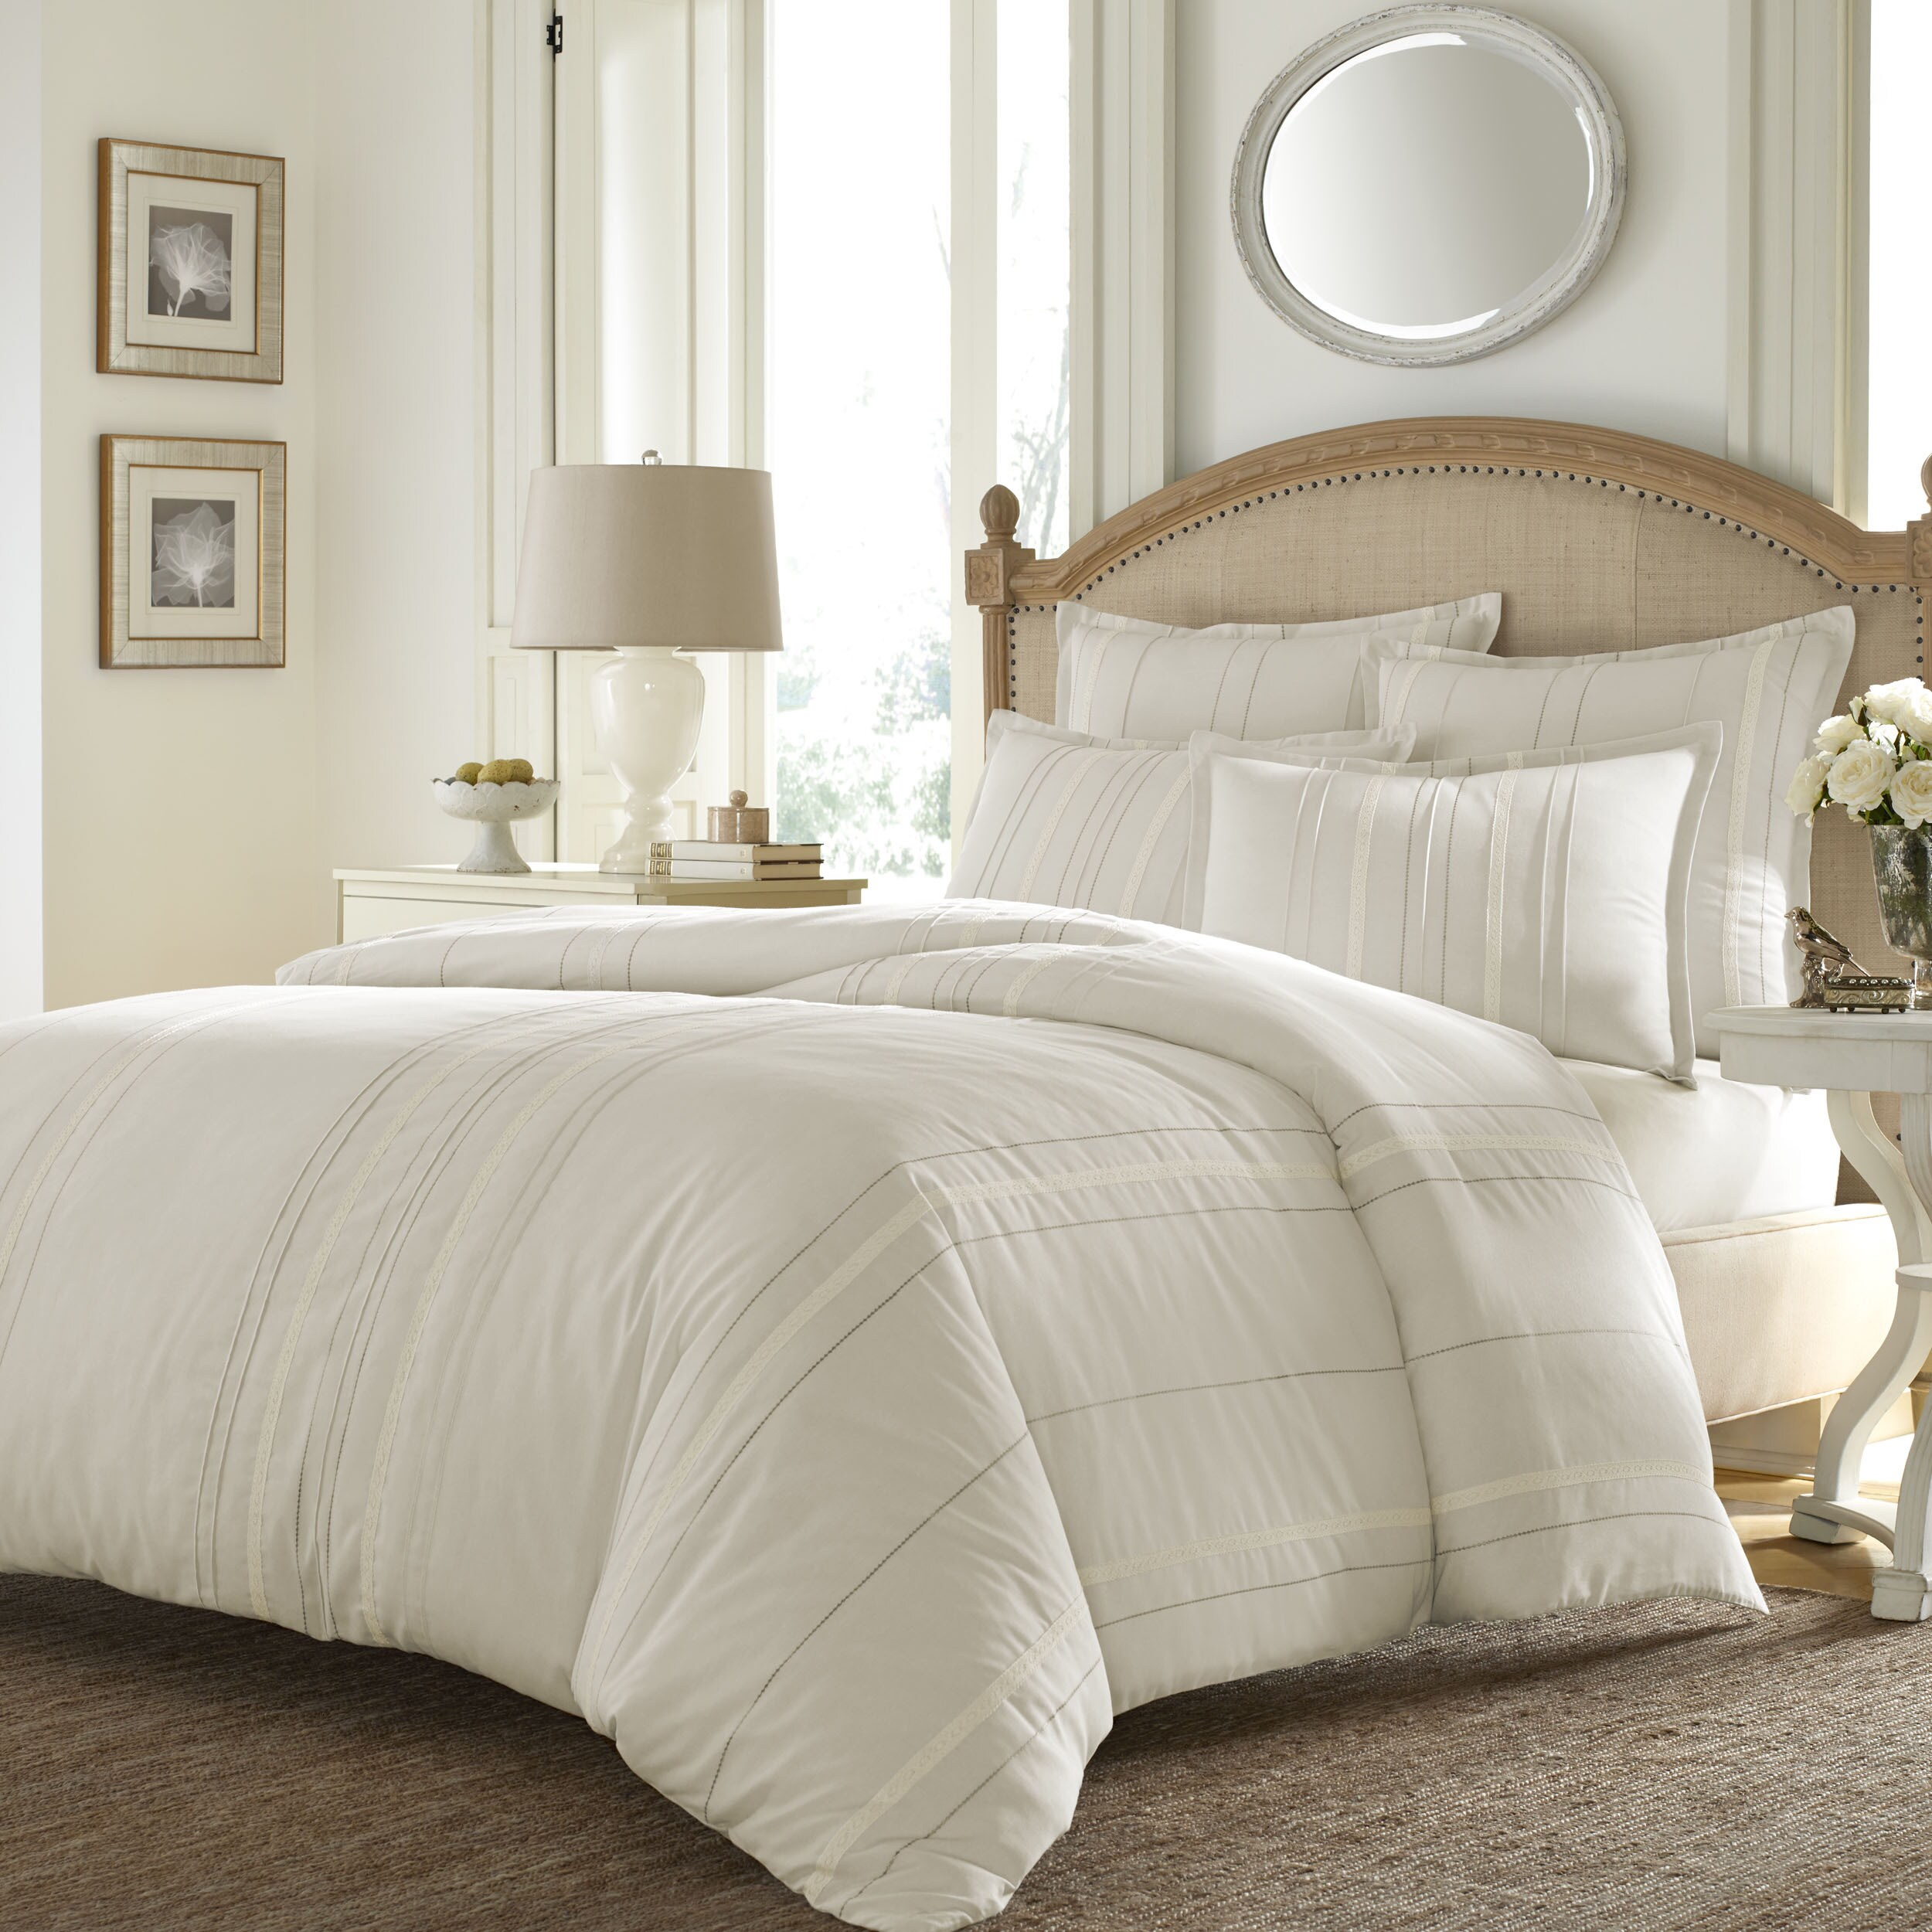 zoom beige p parkerlinenduvetcover parker product cover bedding duvet linen outlet list the